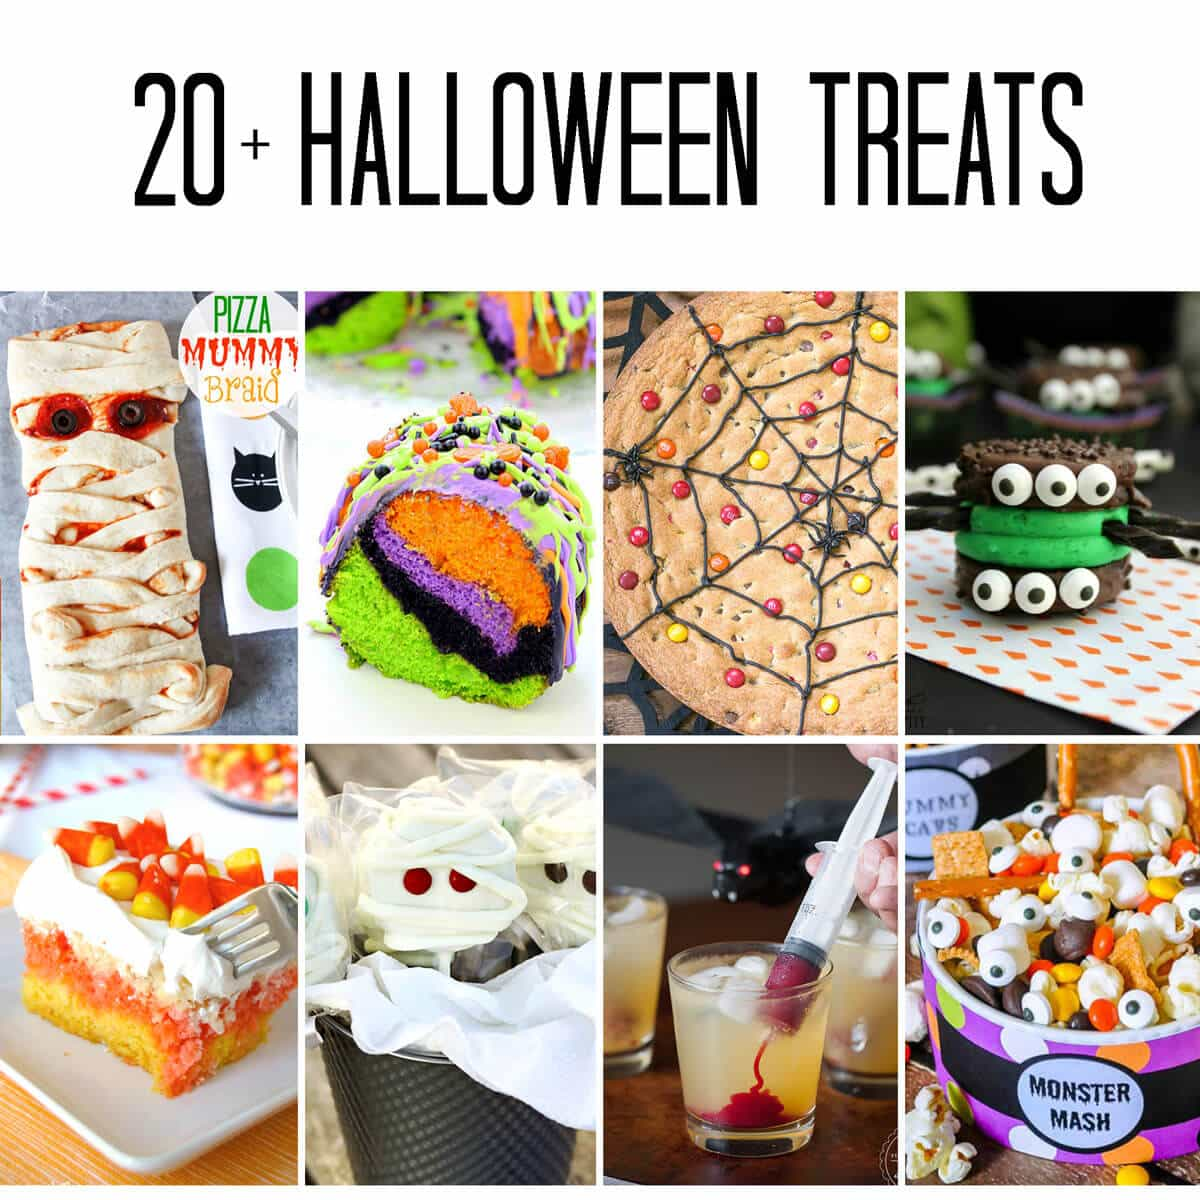 spooktacular halloween treats roundup